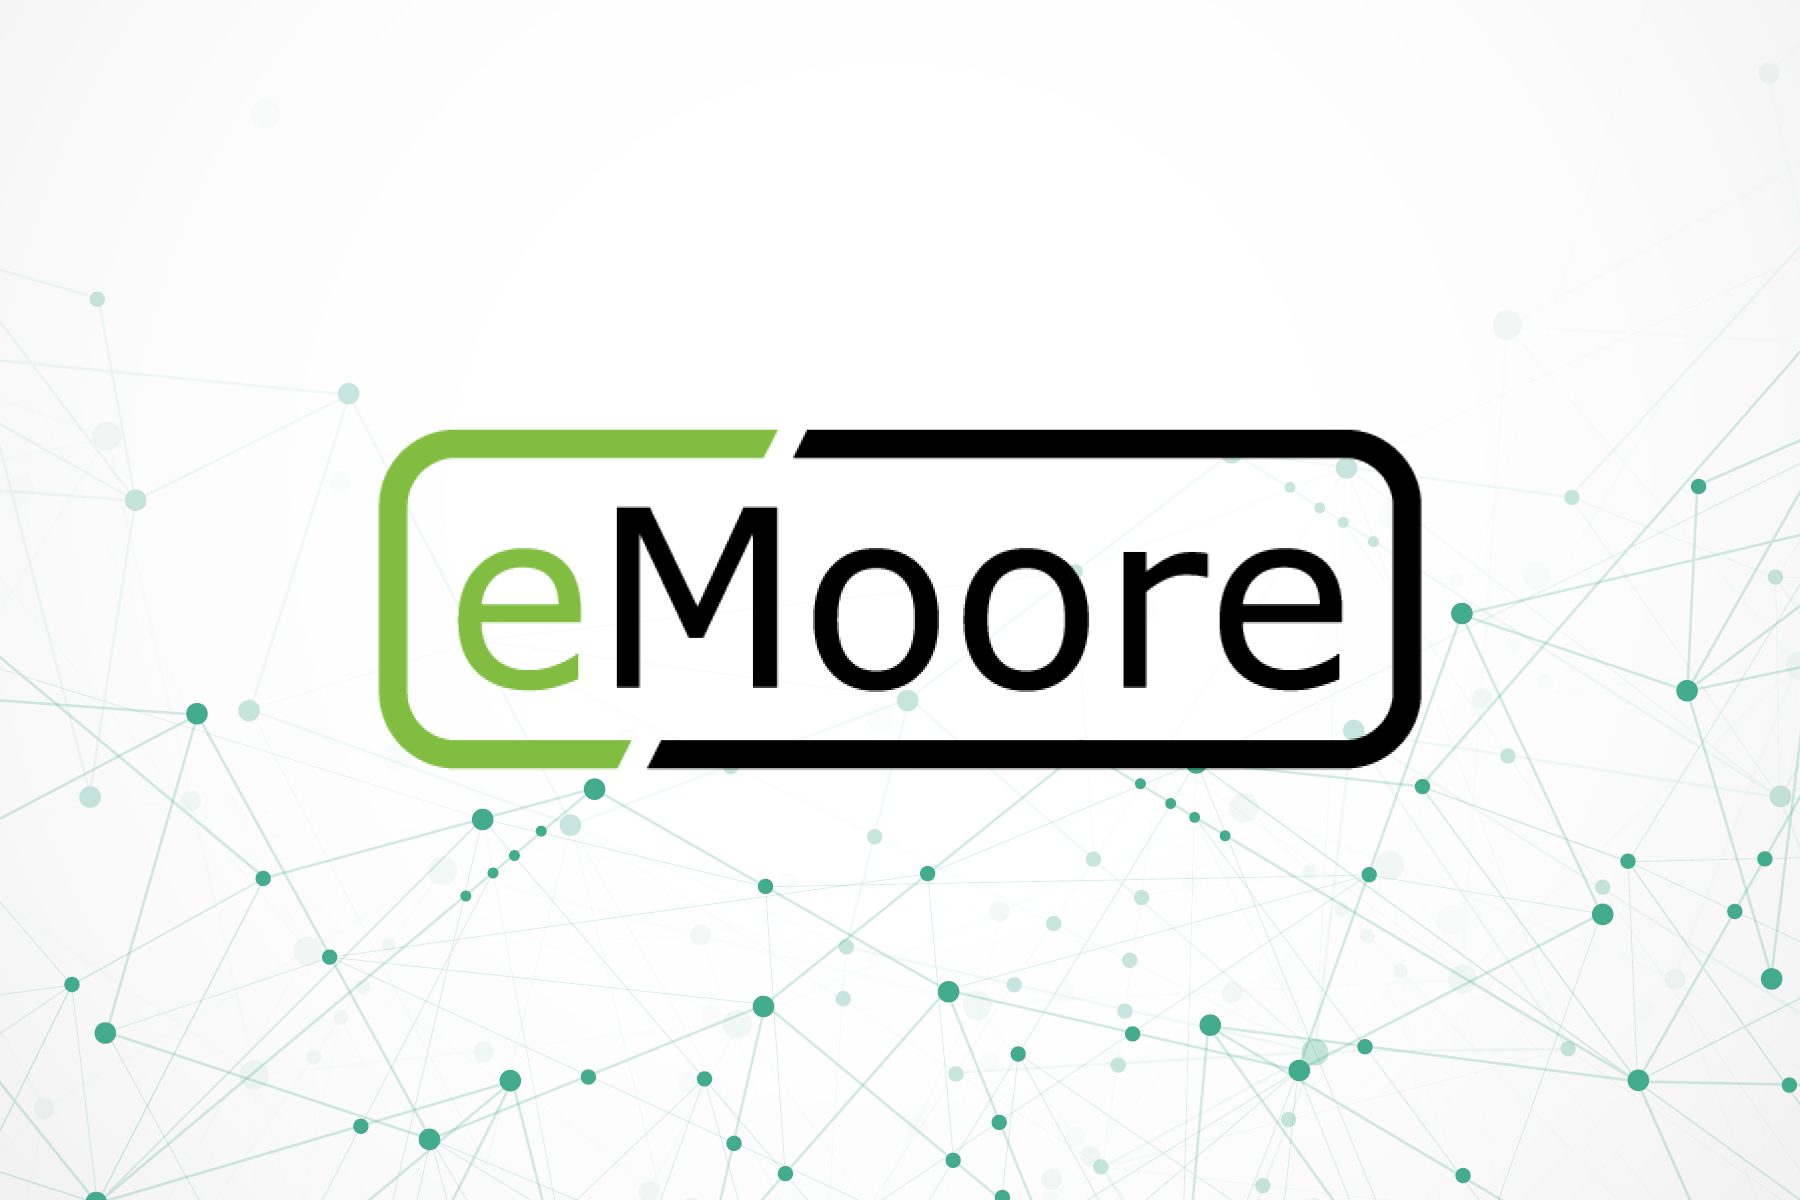 eMoore: A Double Return On Investment